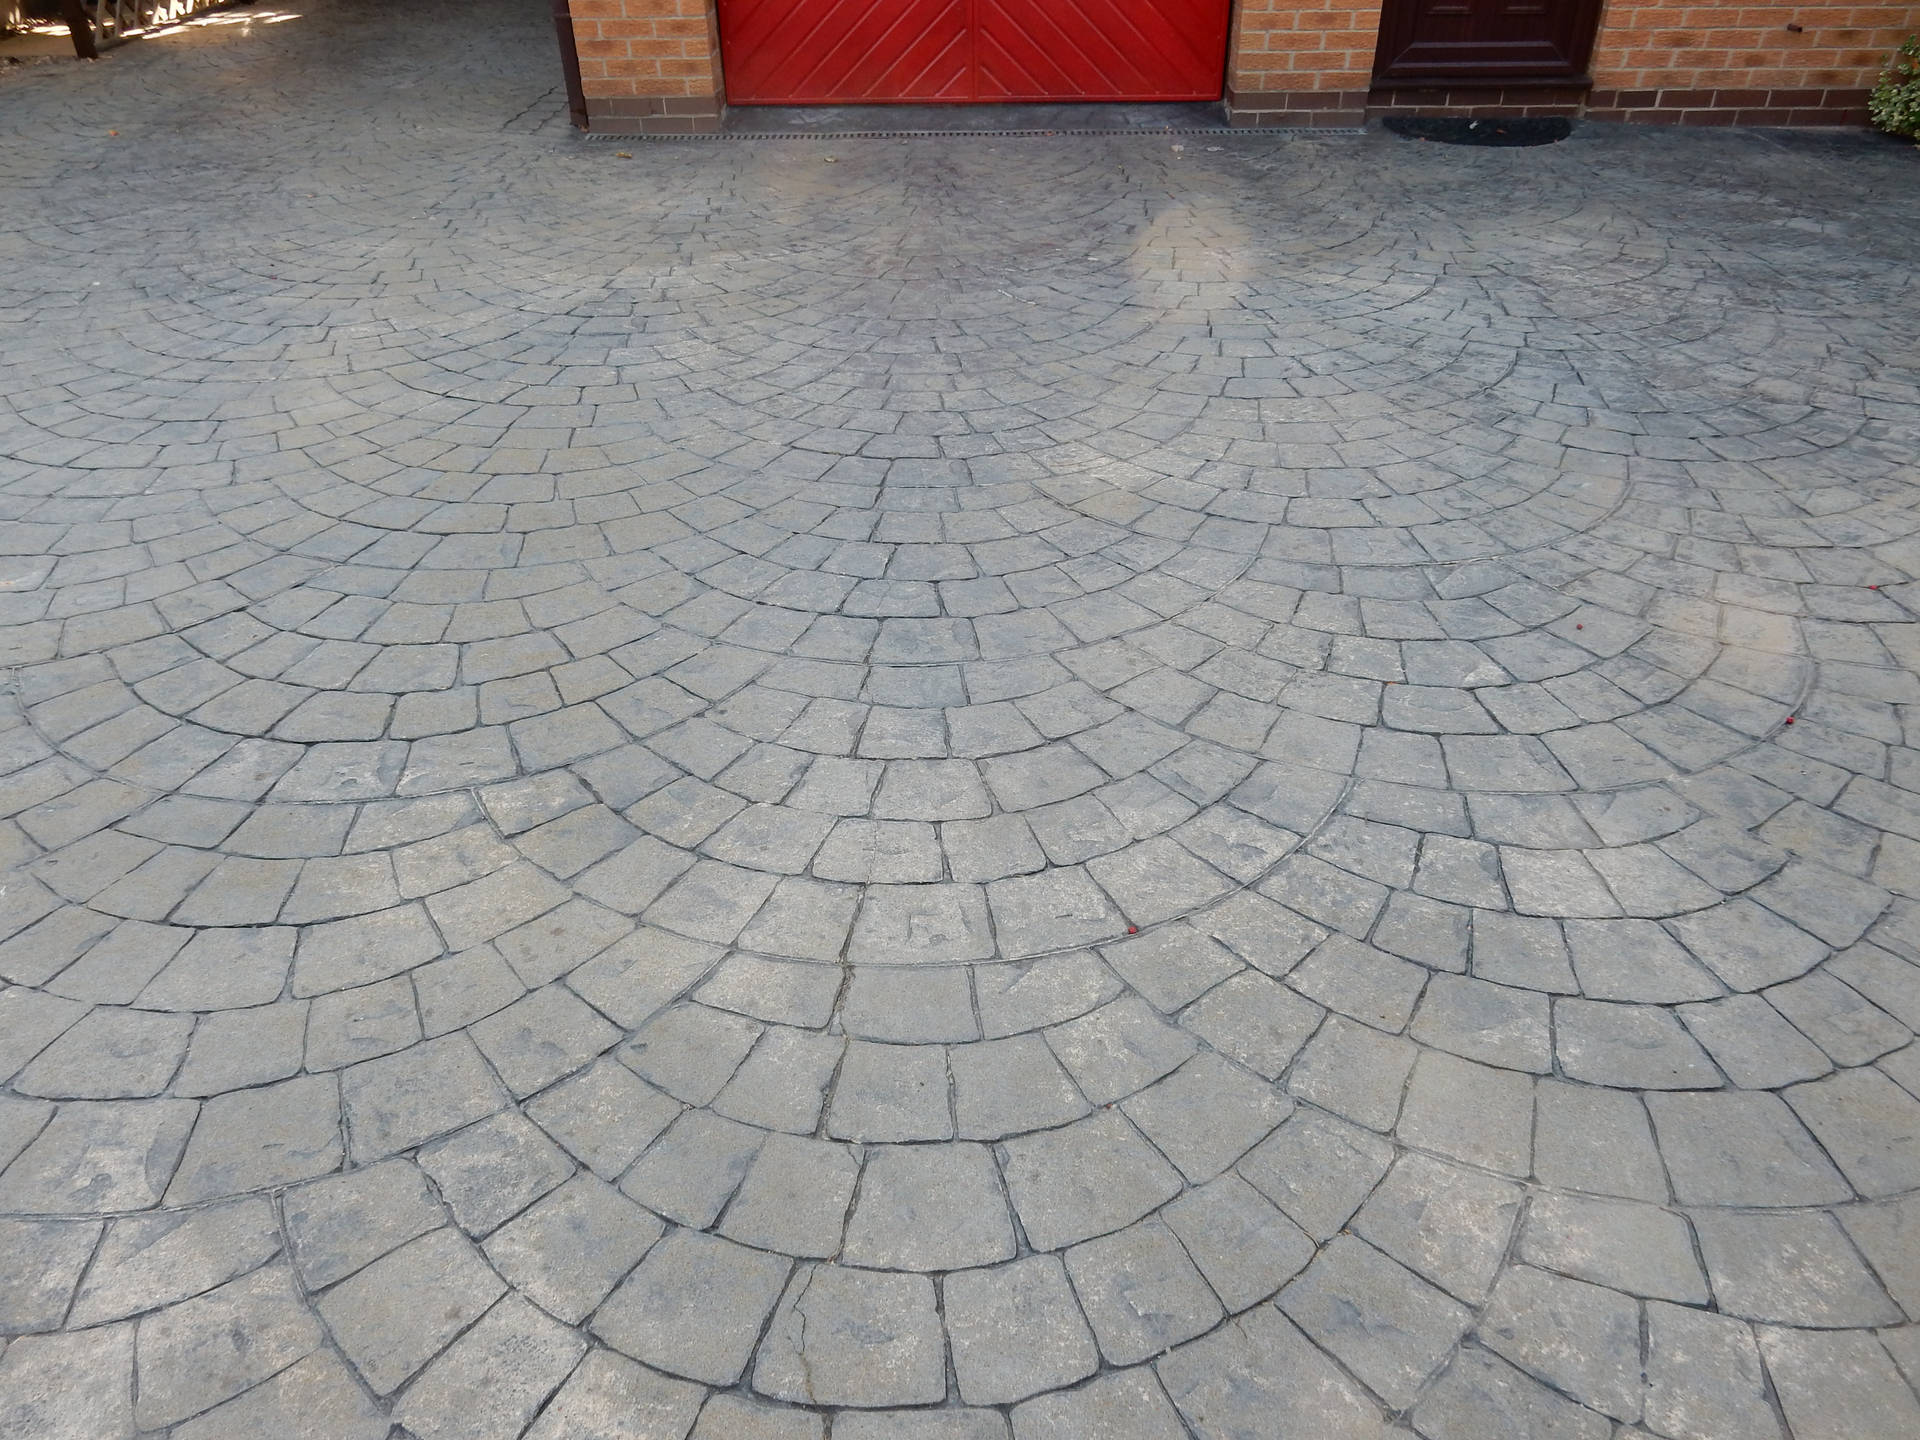 Patterned Concrete Drive After Cleaning